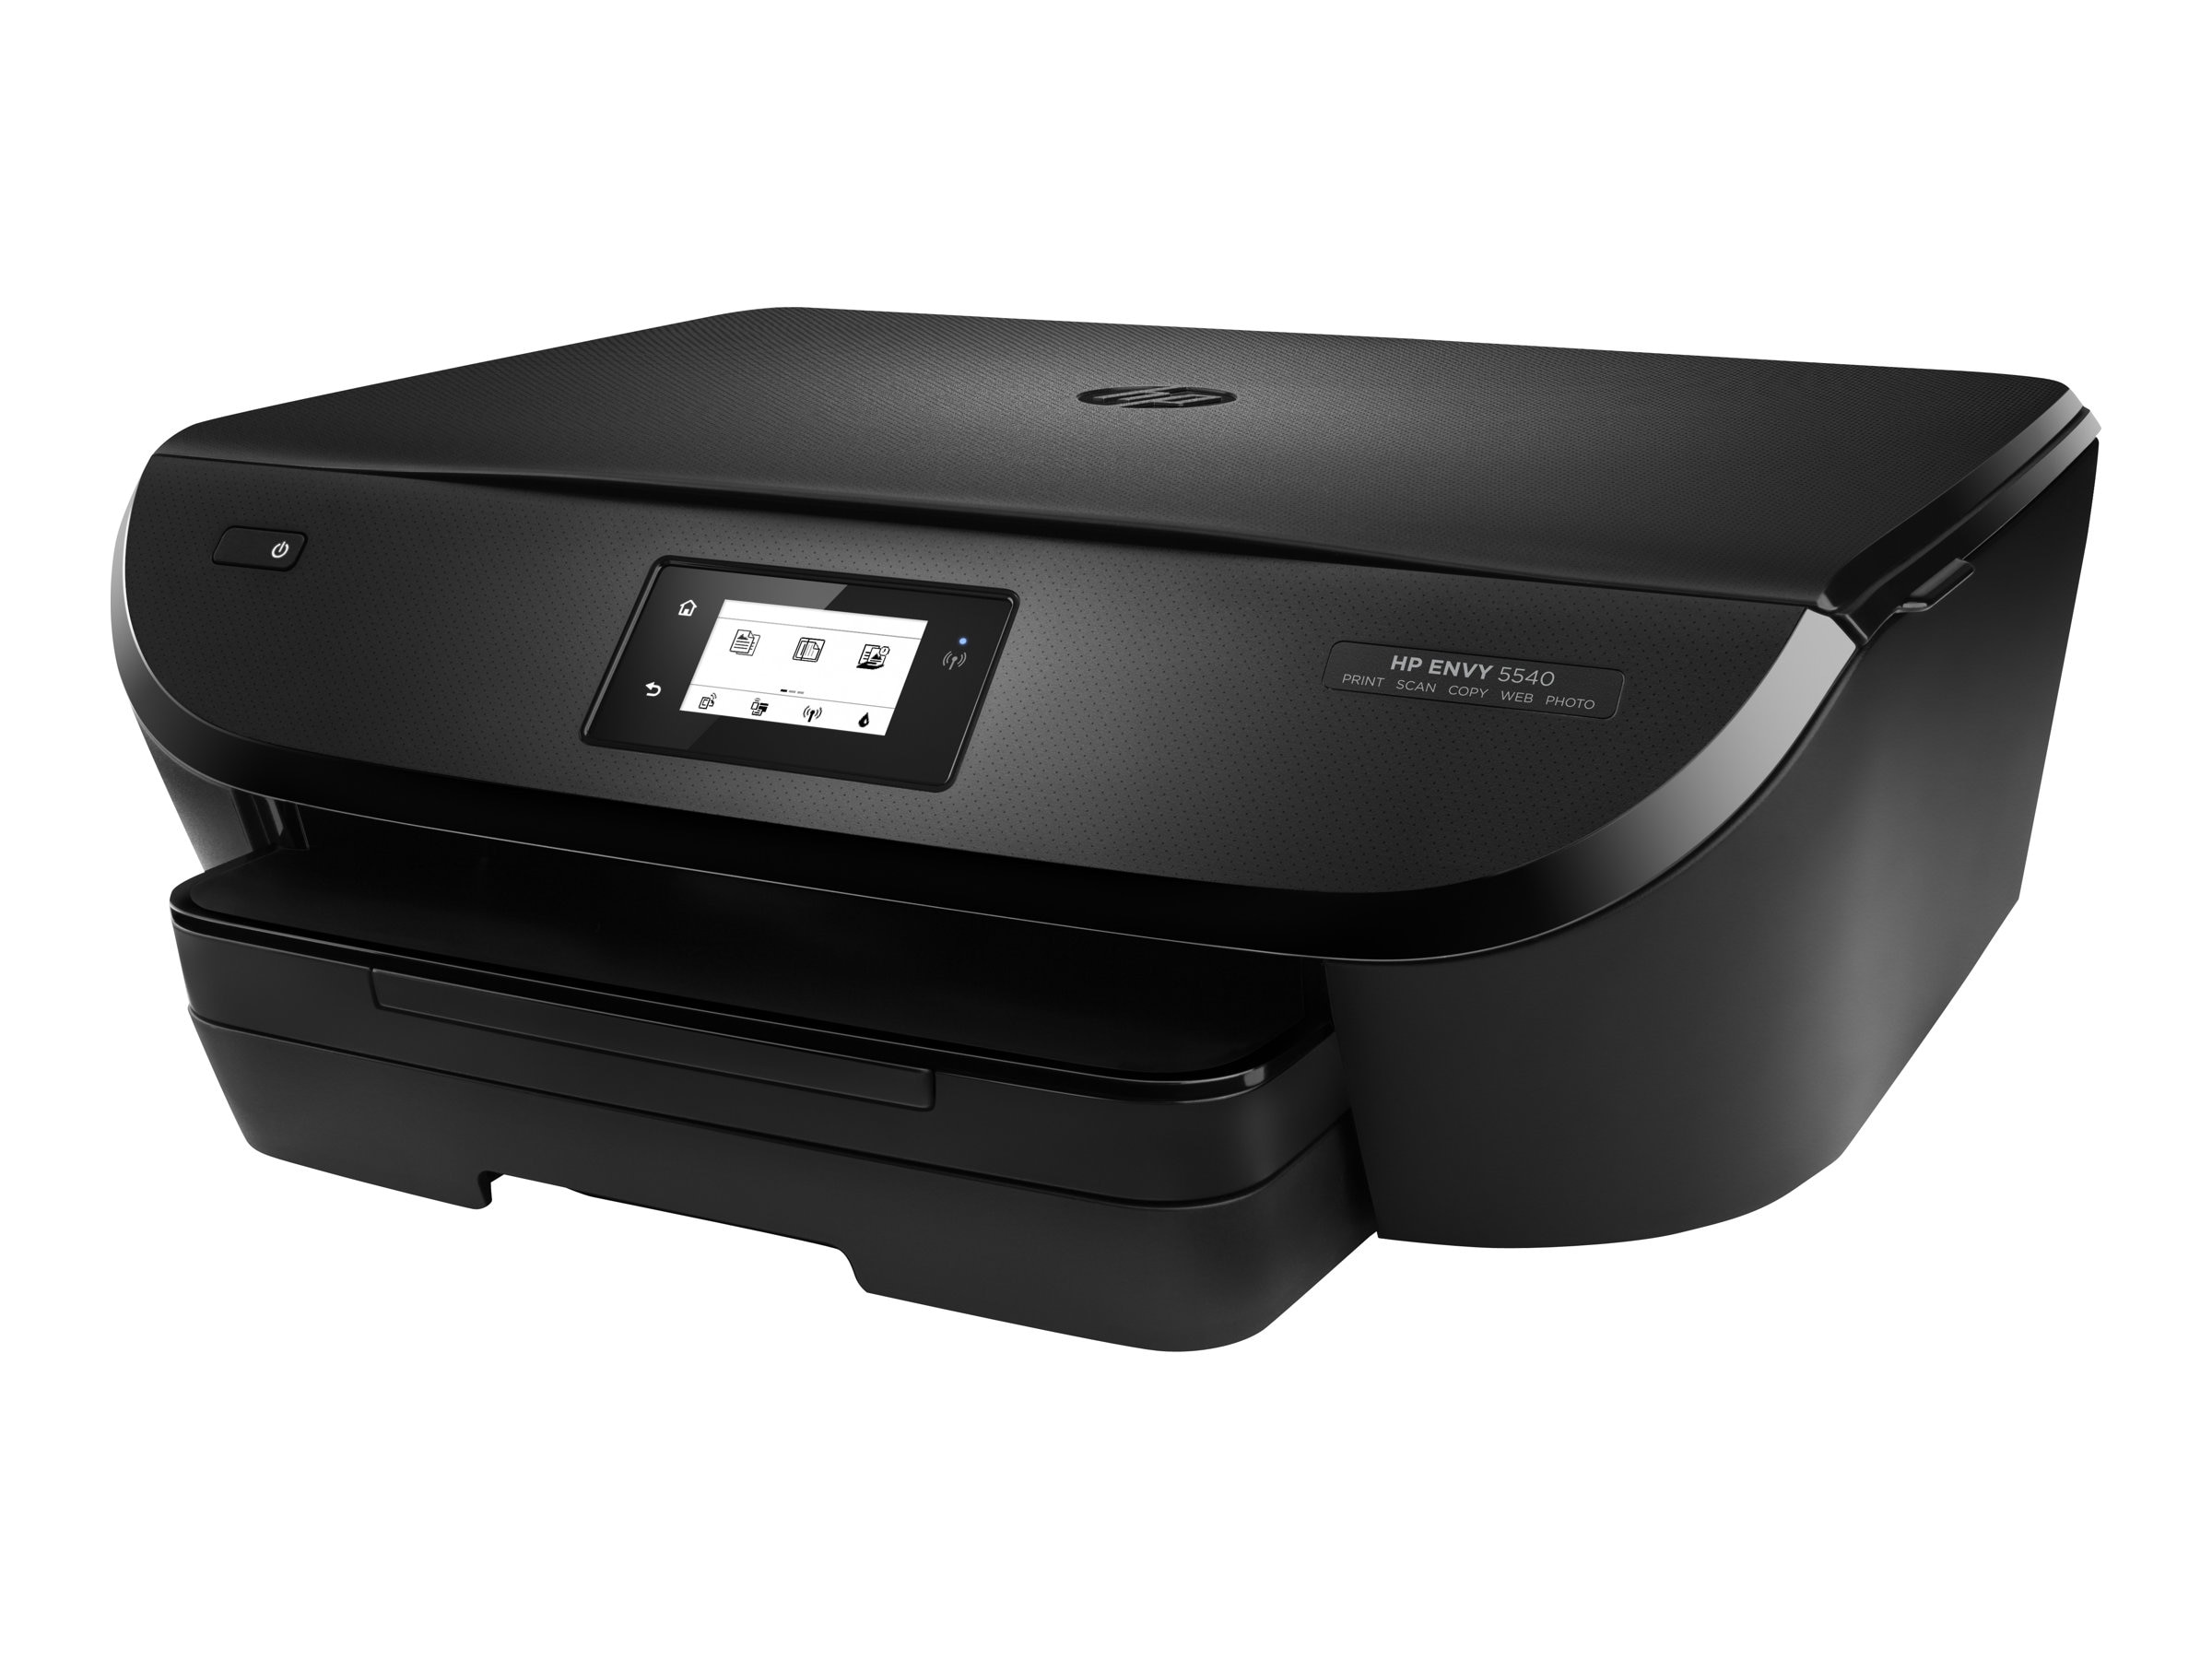 HP ENVY 5540 All-in-One Printer ($129 - $30 Instant Rebate = $99 Expires 2 14 16), K7C85A#B1H, 29320163, MultiFunction - Ink-Jet